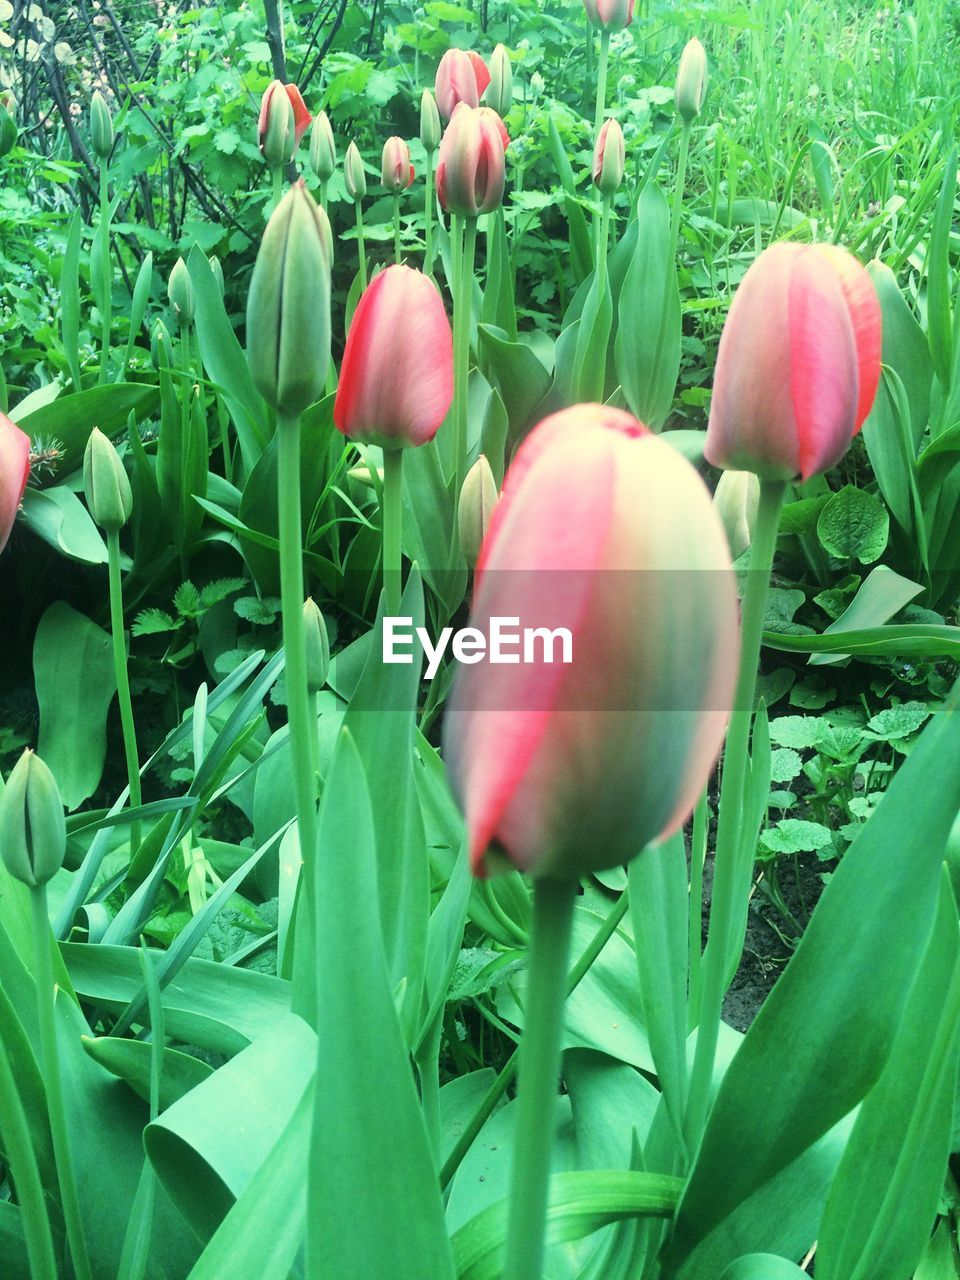 growth, nature, freshness, plant, green color, tulip, flower, beauty in nature, leaf, no people, outdoors, day, food, close-up